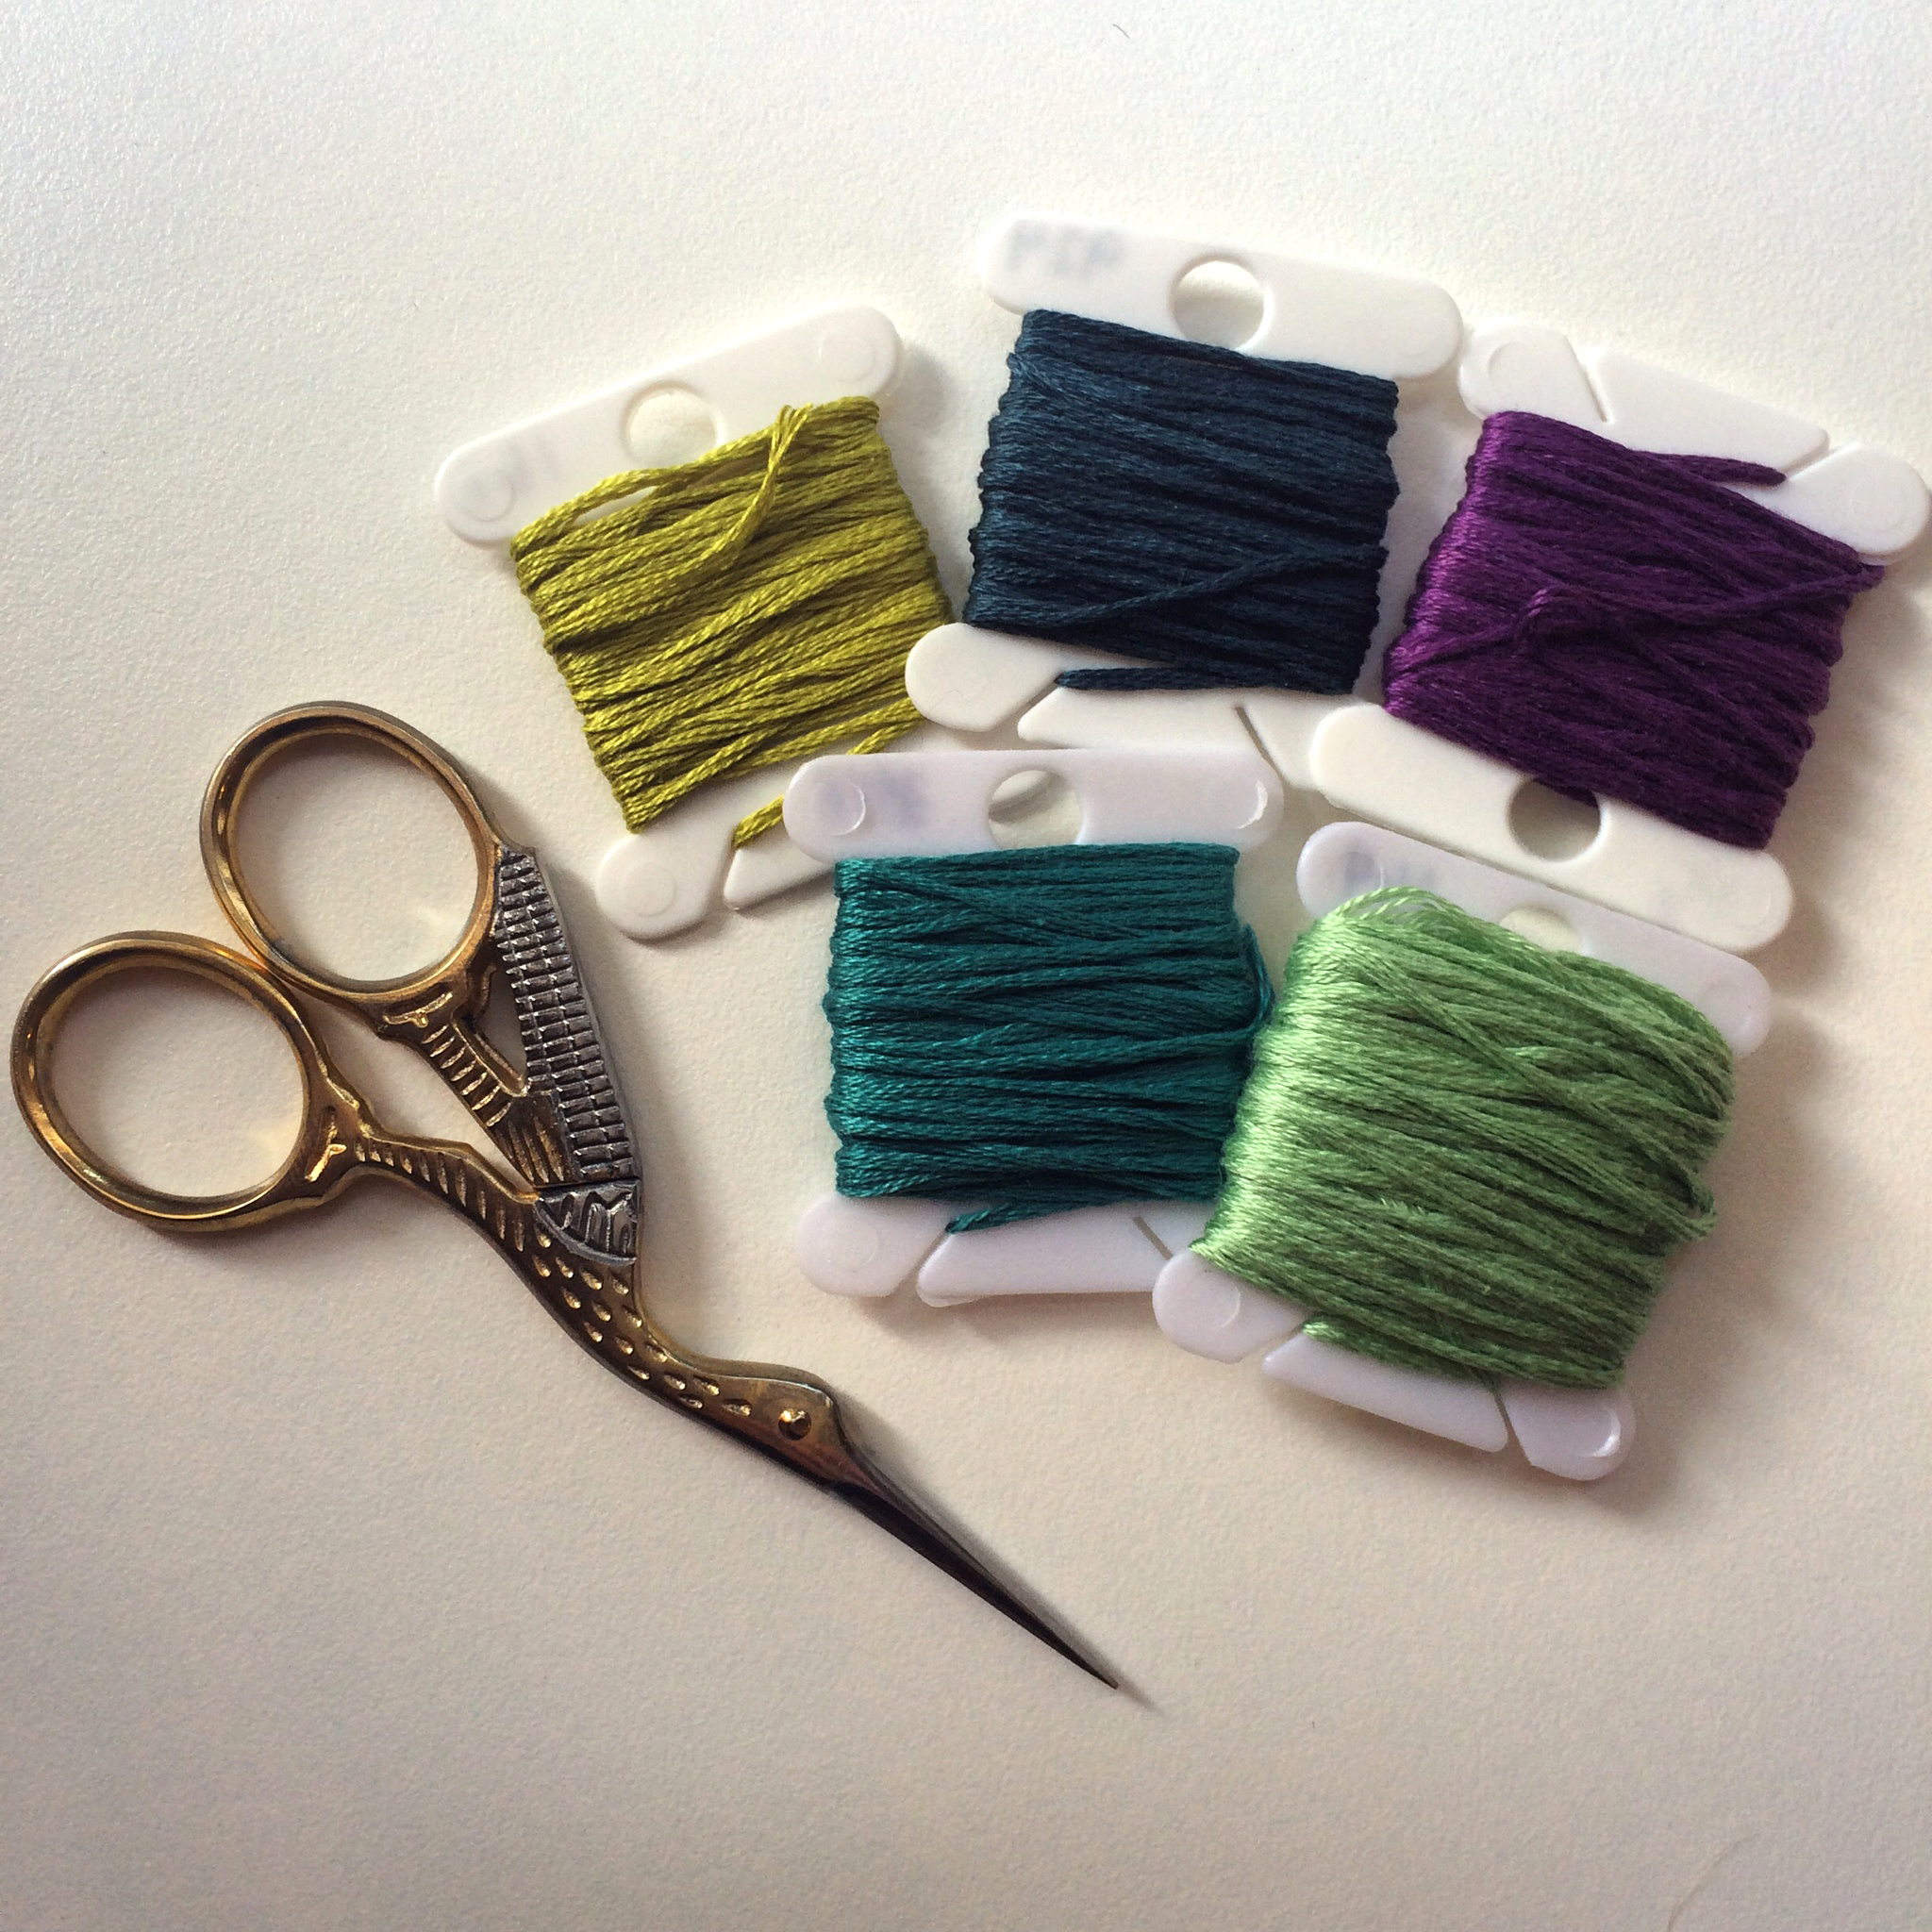 Embroidery floss selection for a project #loveofpattern www.loveofpattern.com